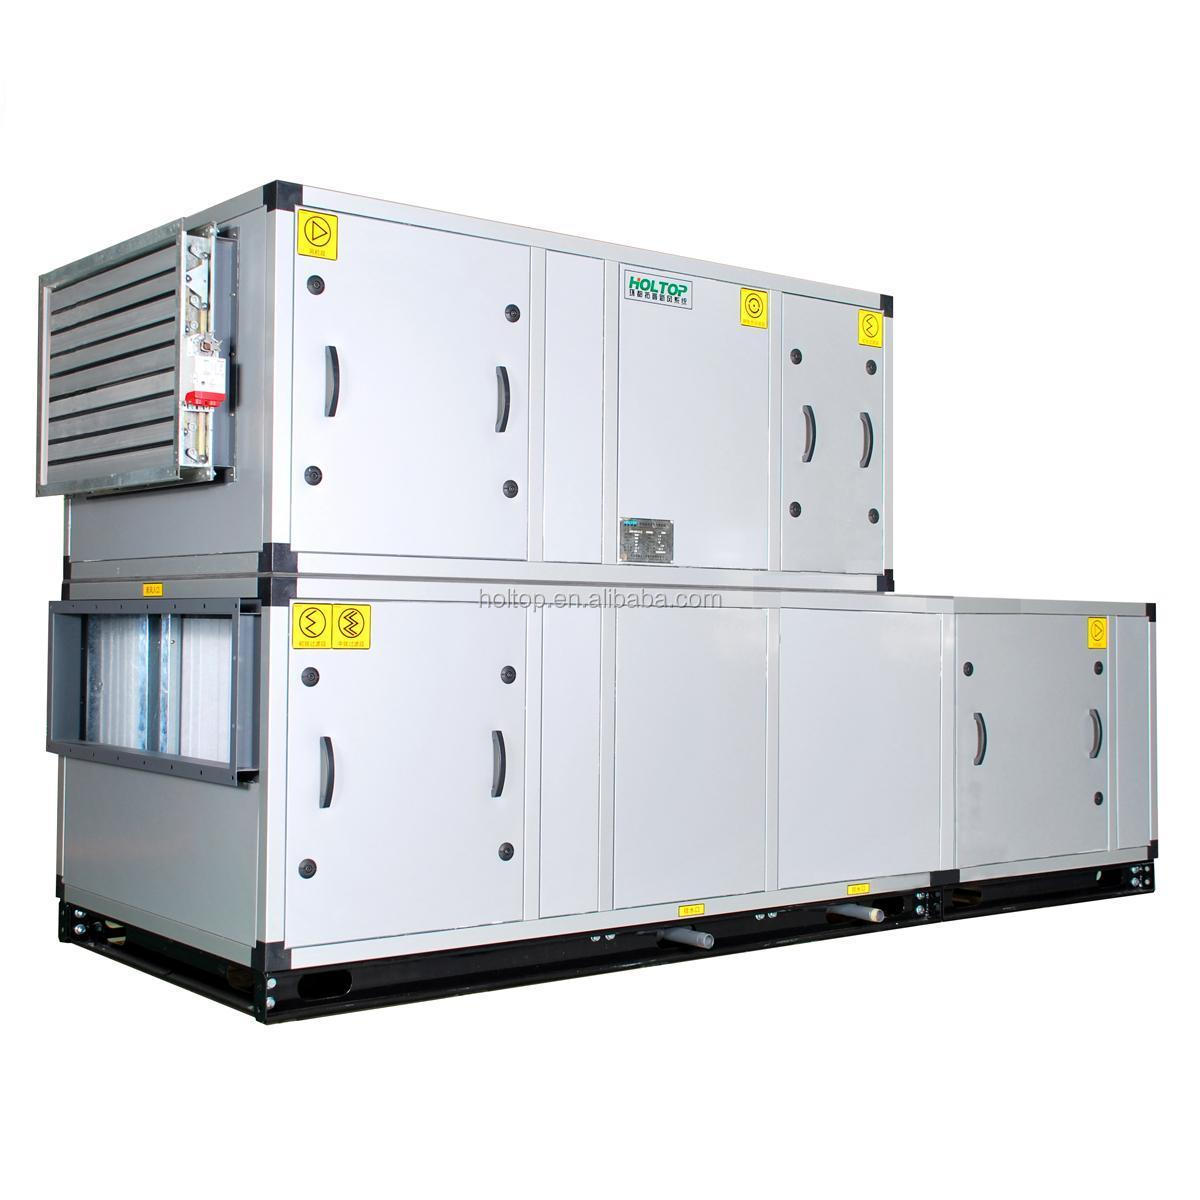 Air Temperature Units : Industrial air handling unit with heat recovery used in